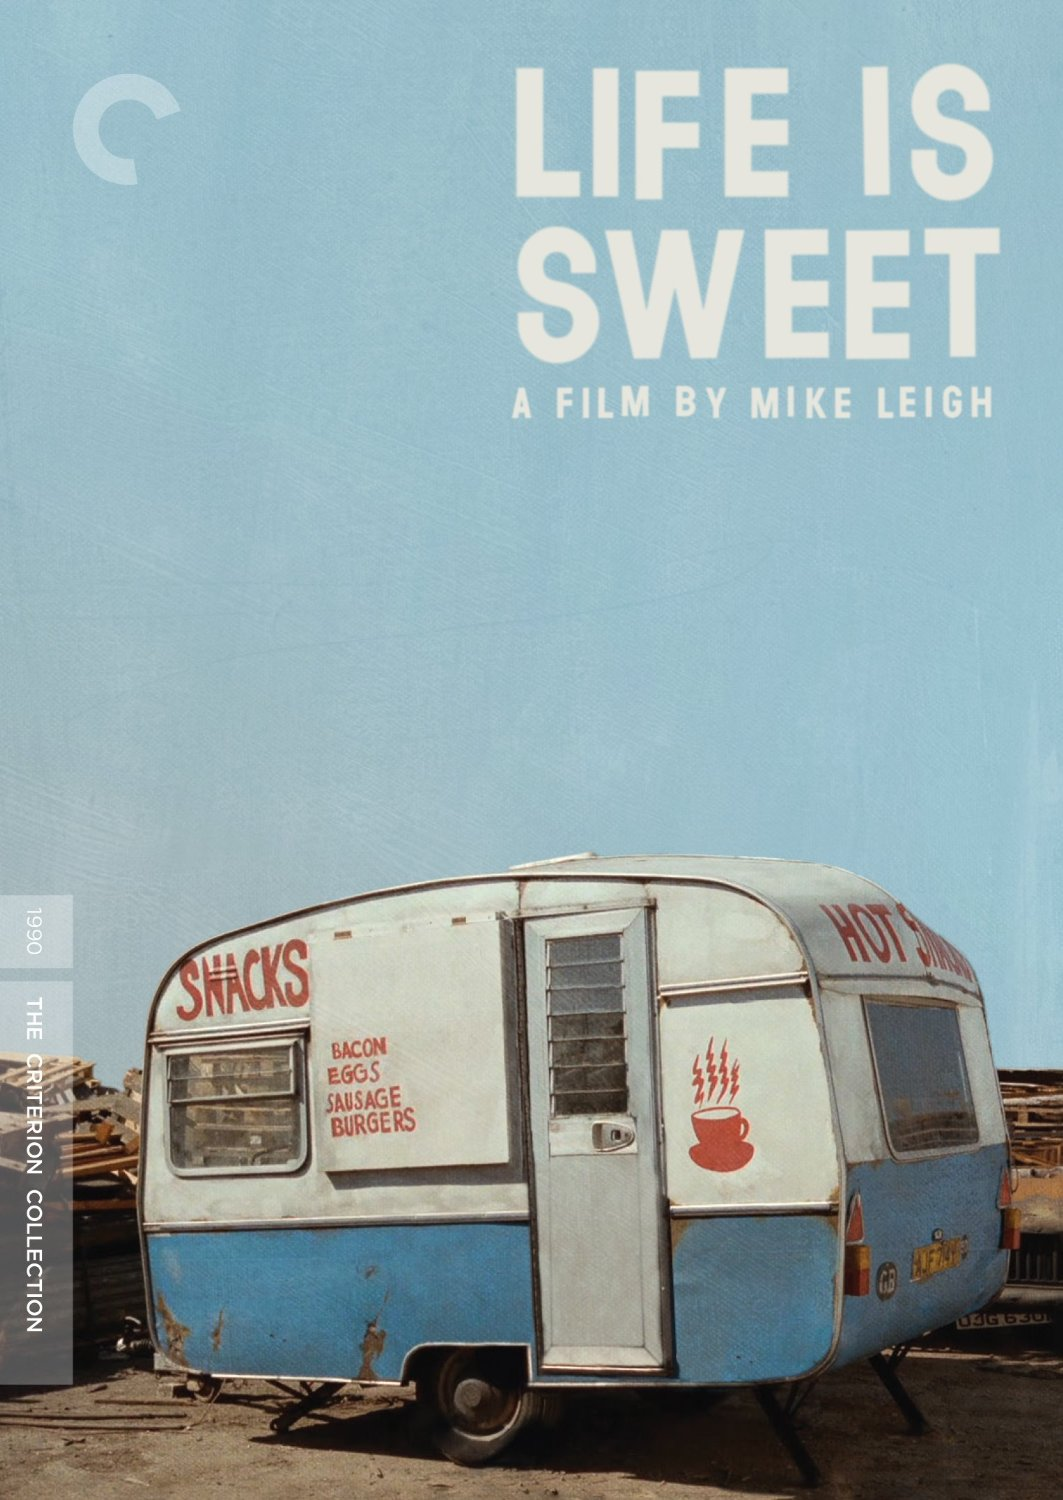 Life is Sweet (1990) - Directed by: Mike LeighStarring: Alison Steadman, Jim Broadbent, Claire Skinner, Jane Horrocks, Stephen Rea, Timothy Spall, David ThewlisRated: R for Language and a Scene of SensualityRunning Time: 1 h 43 mTMM Score: 5 stars out of 5STRENGTHS: Writing, Directing, Themes, CharactersWEAKNESSES: -